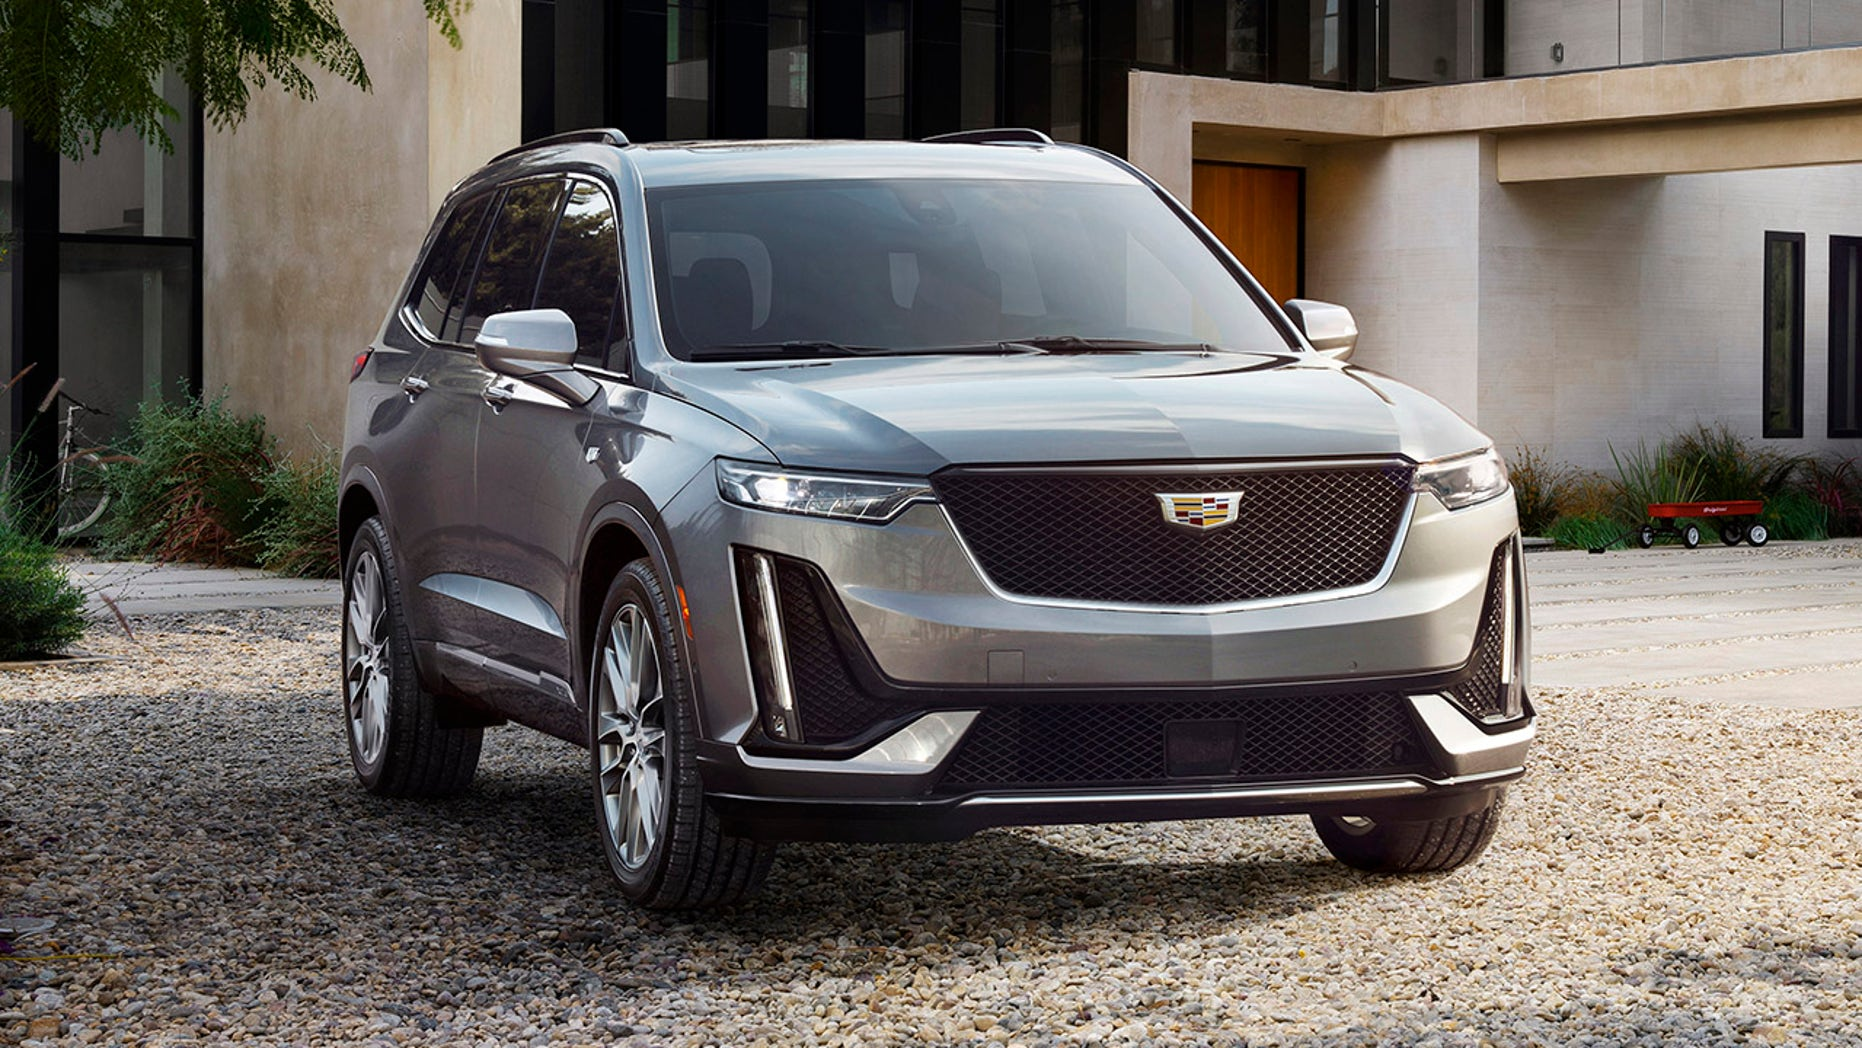 Cadillac teases an electric vehicle: Here's what it looks like